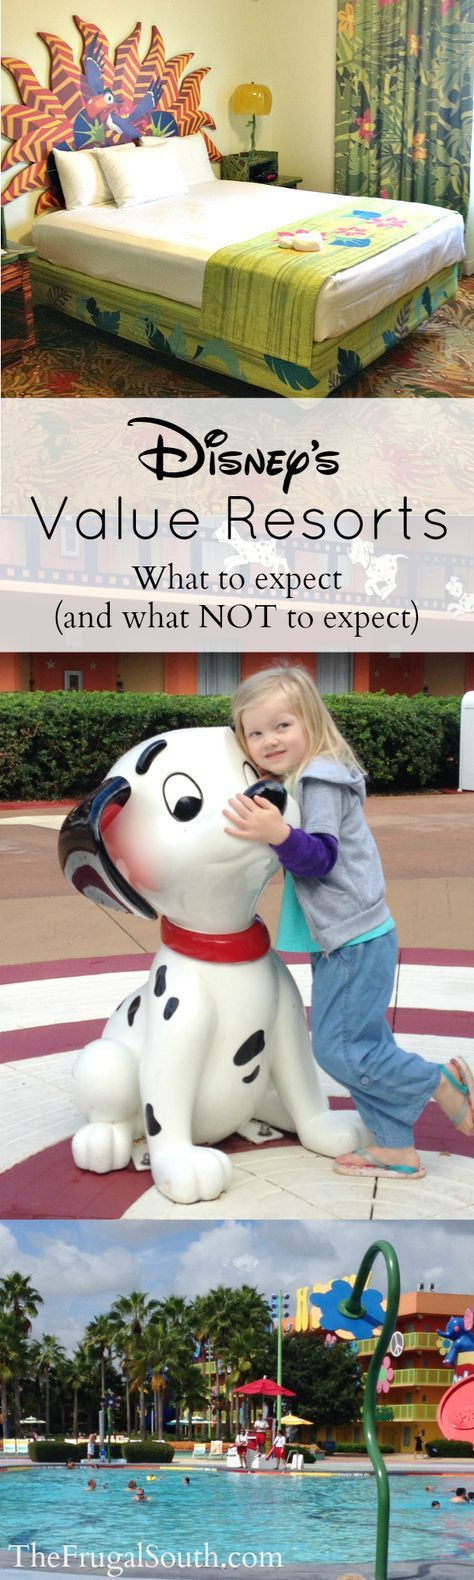 I've stayed at all five of Walt Disney World's Value Resorts at least once, and one of them MANY times. I think they offer a fantastic (and affordable) va